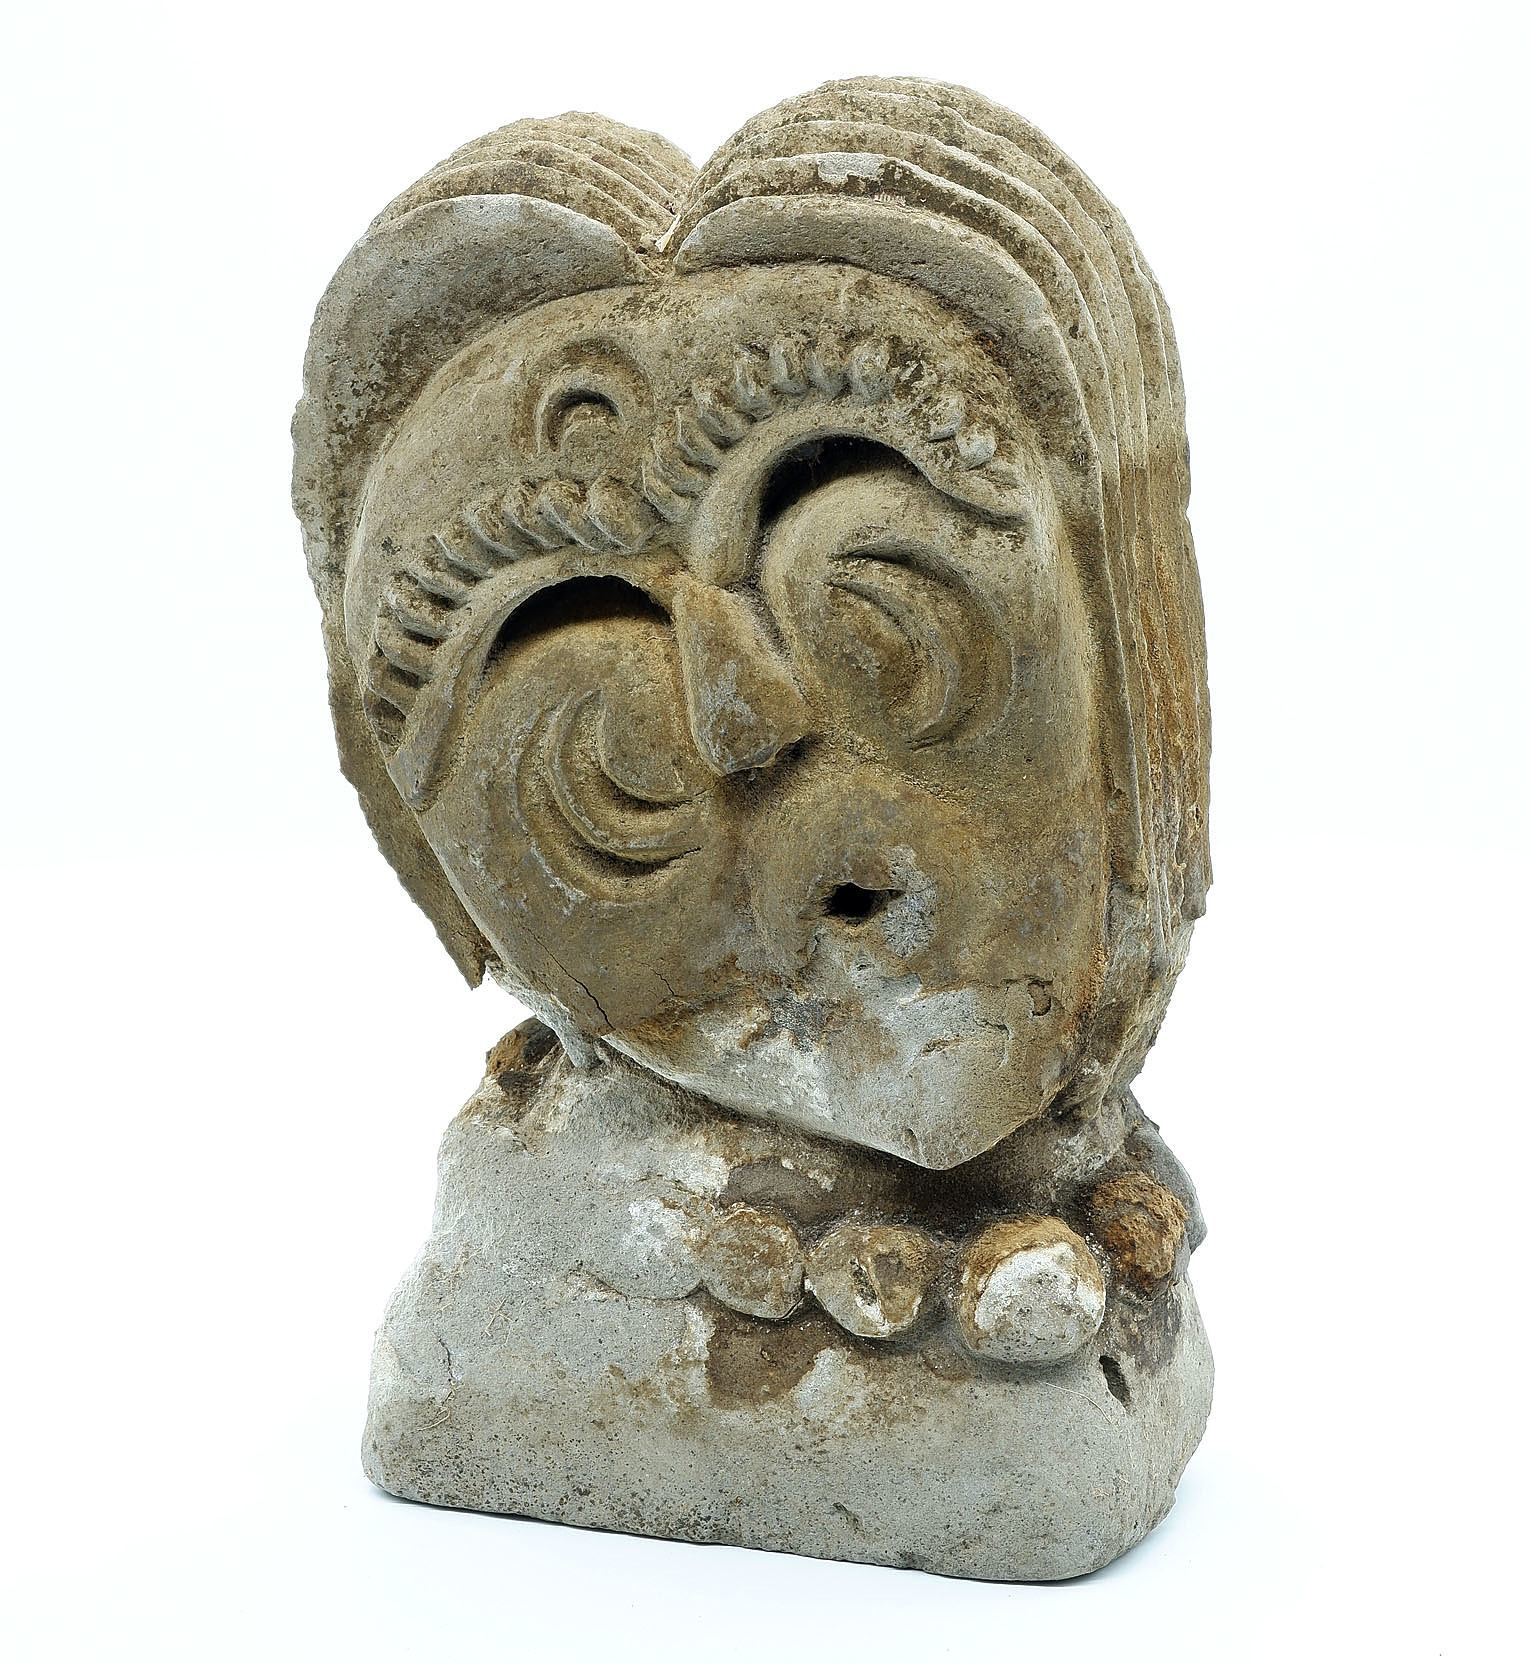 'I Wayan Cemul (Balinese) Carved Volcanic Stone Sculpture'